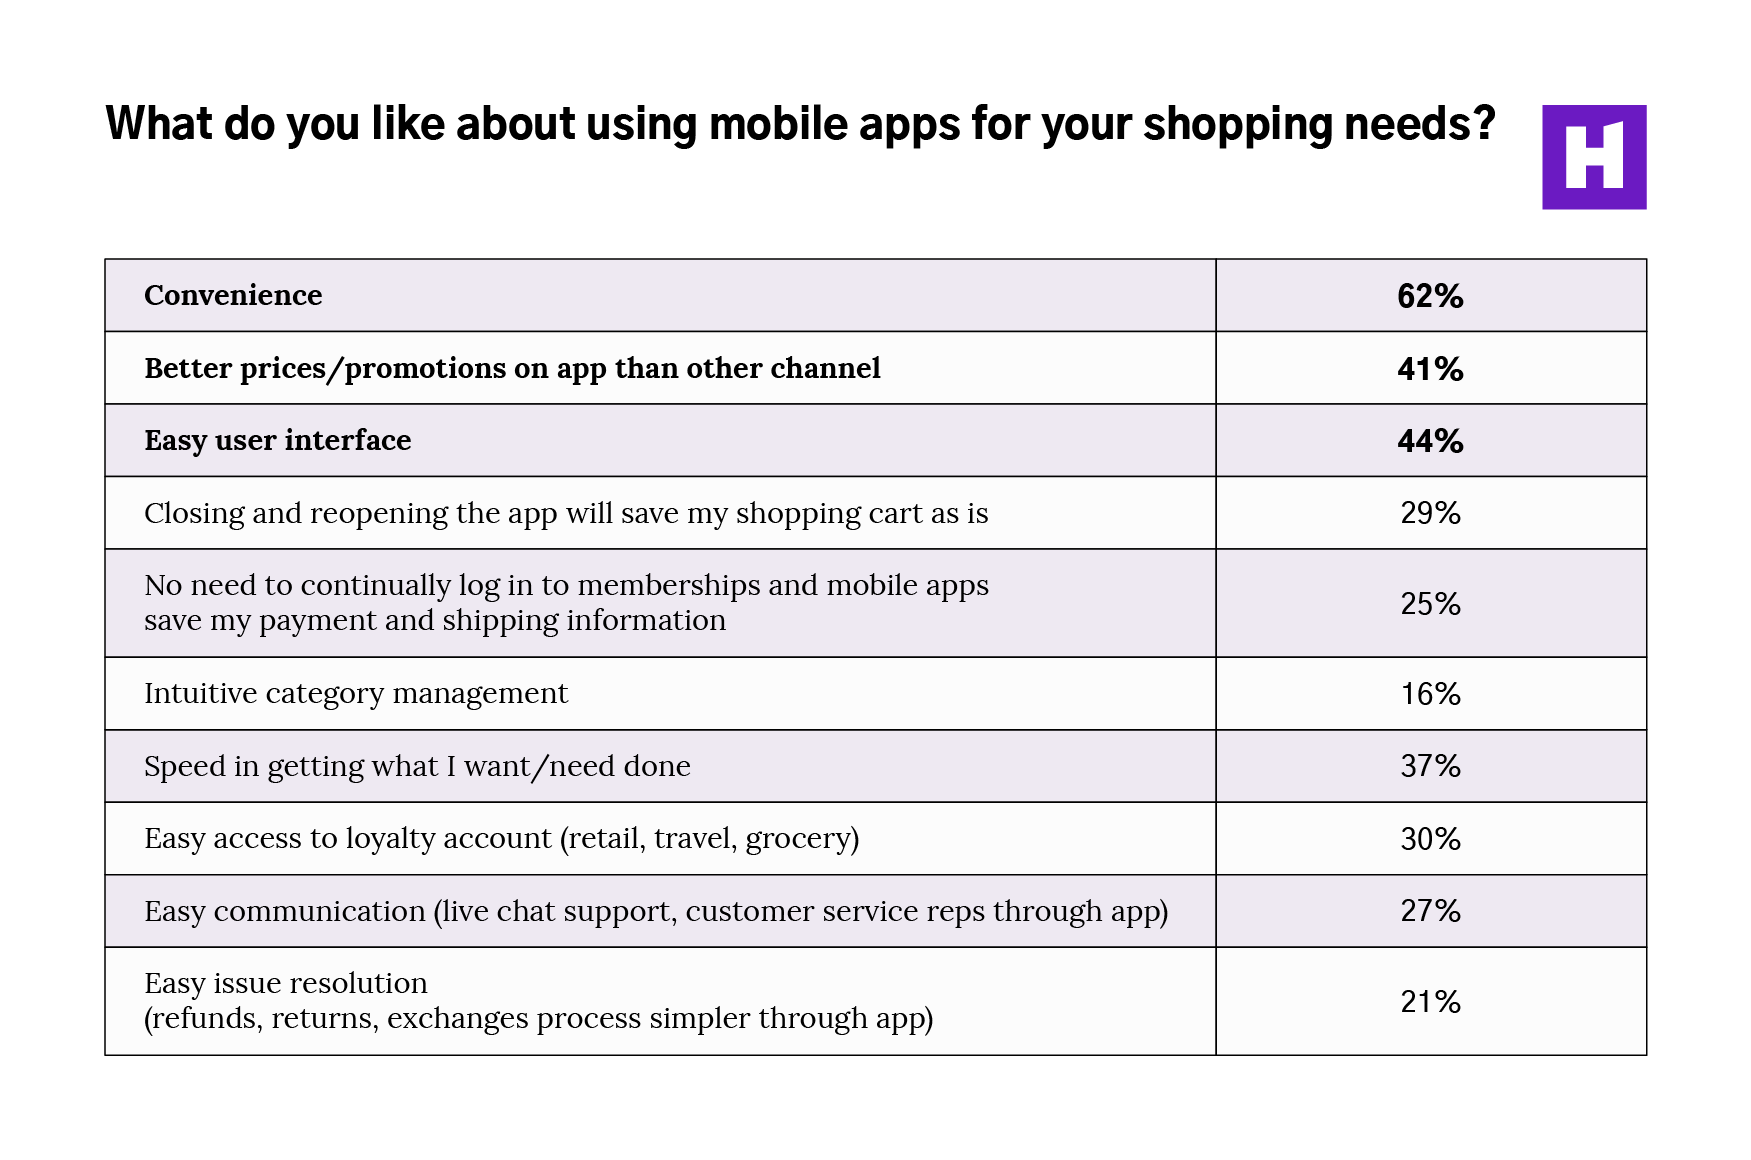 02-What-do-like-about-using-mobile-apps-for-your-shopping-needs